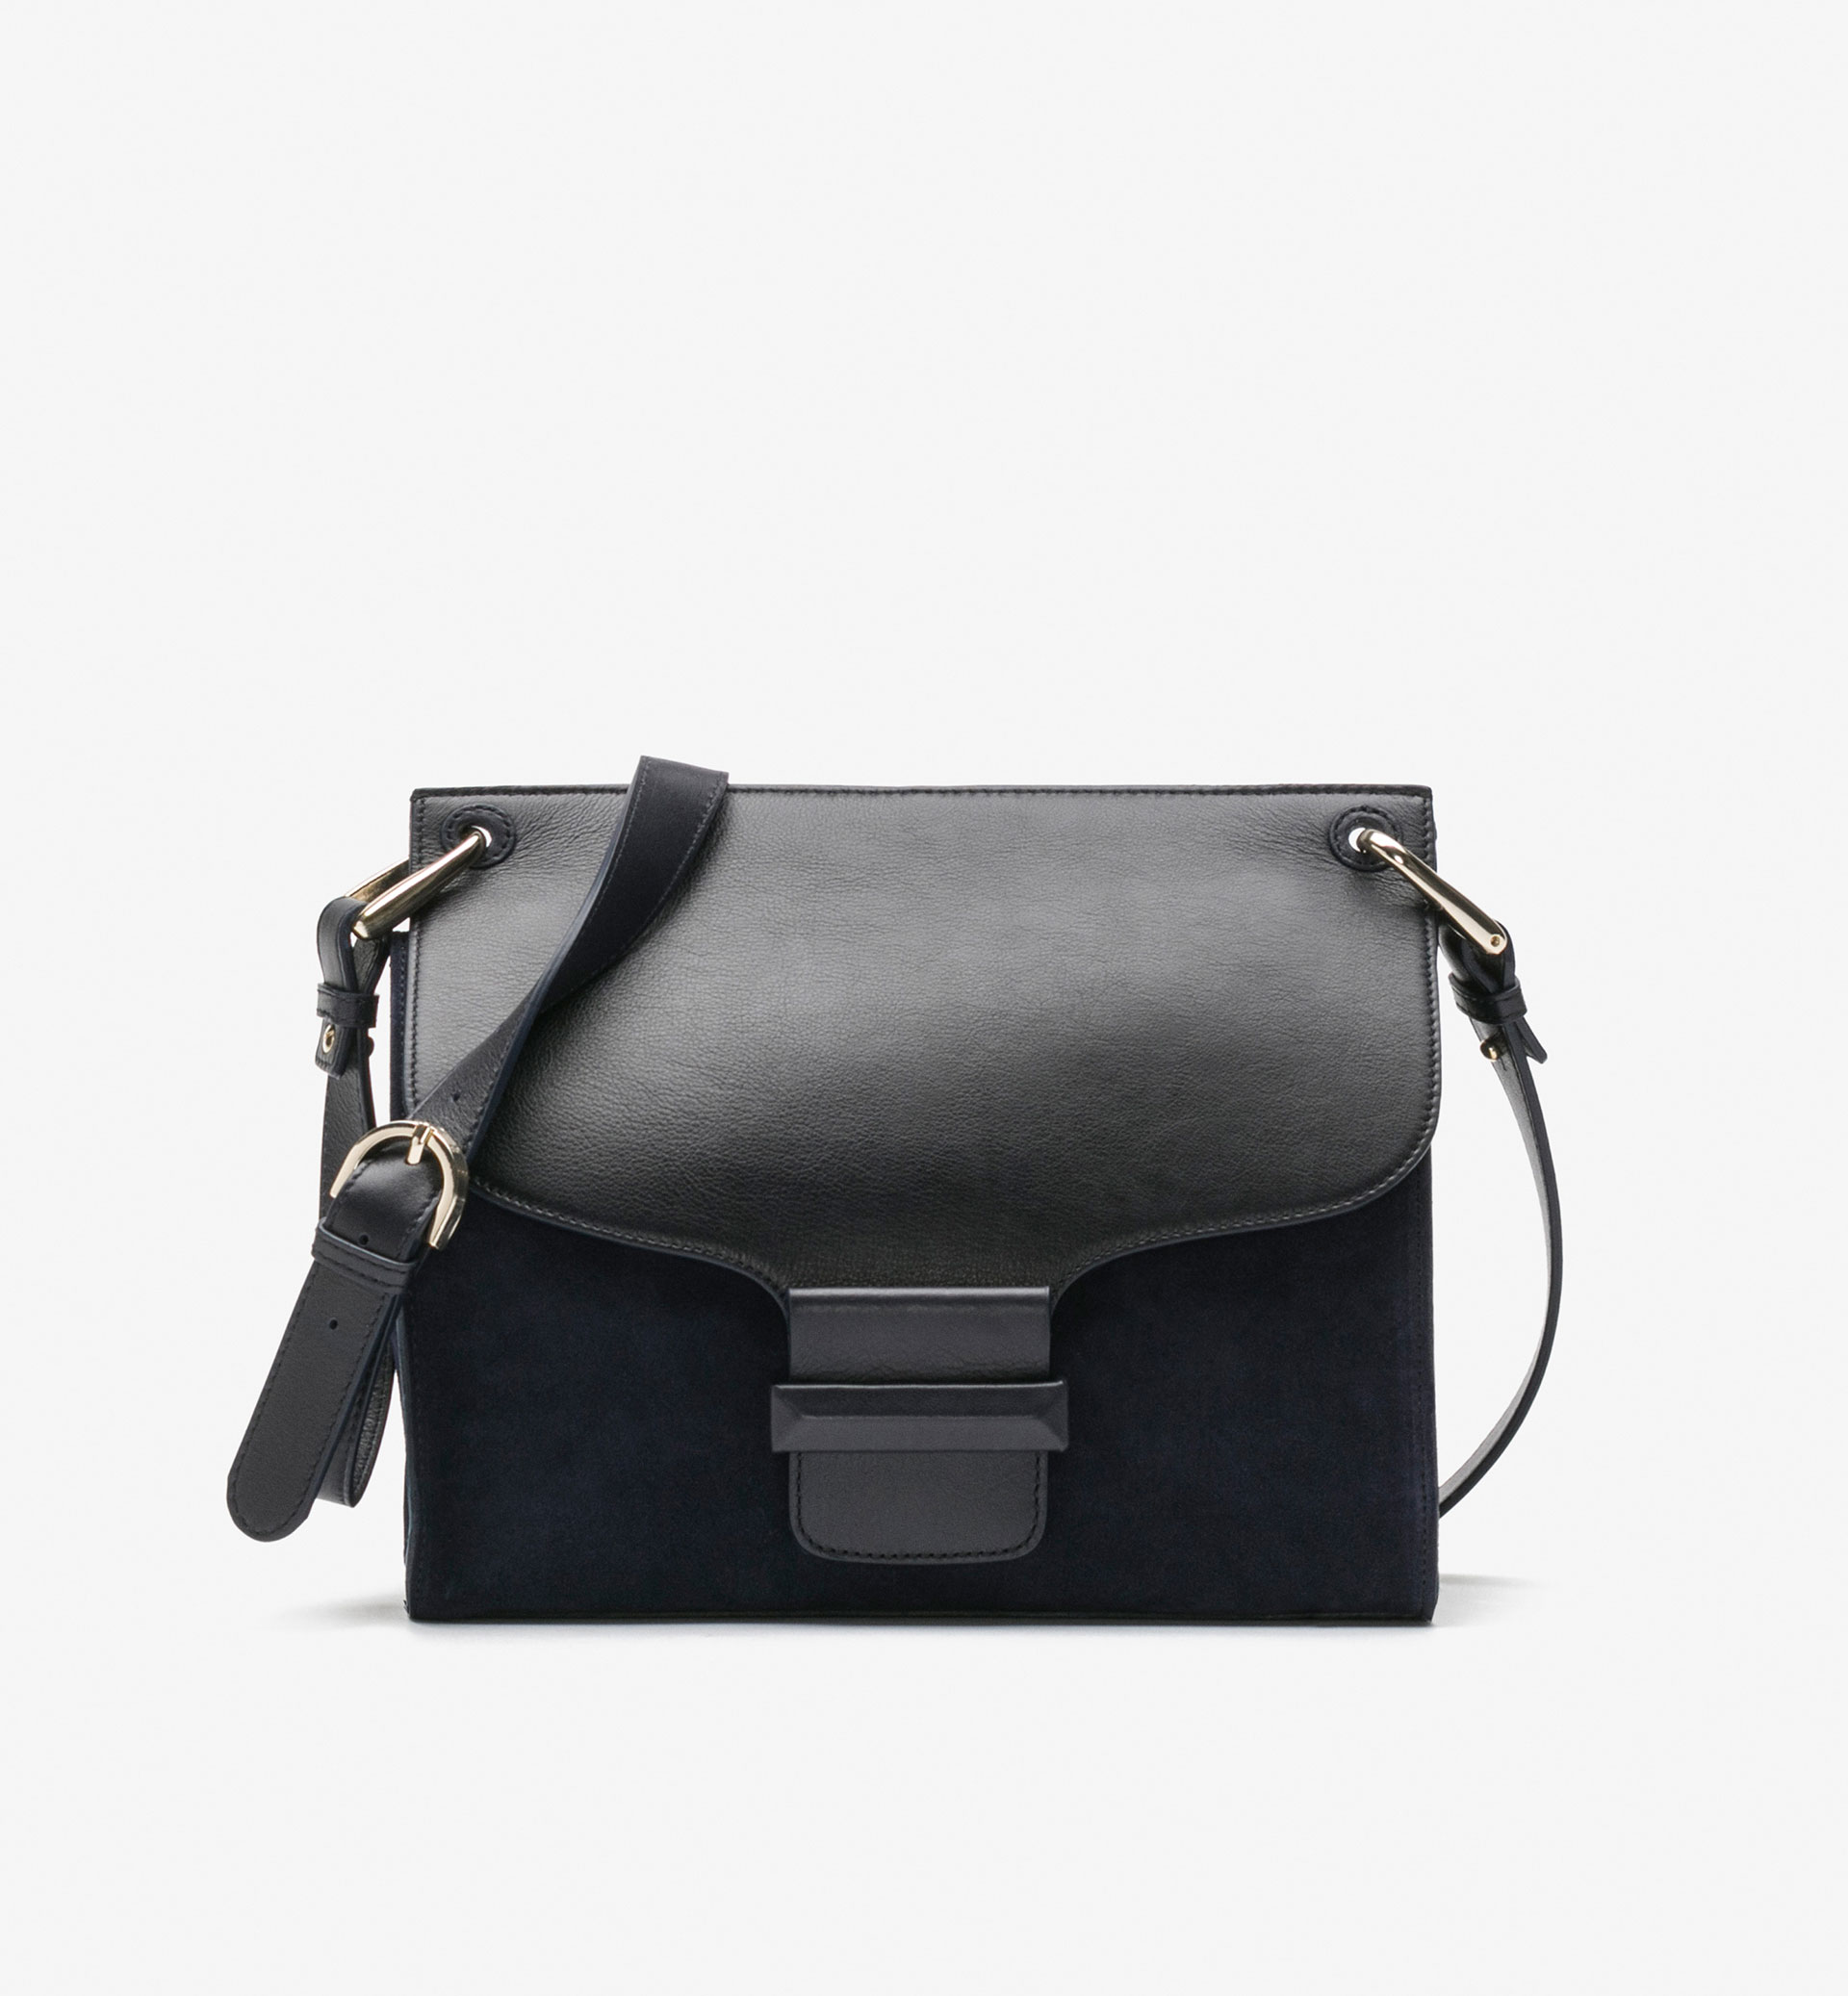 LARGE CONTRASTING CROSSBODY BAG